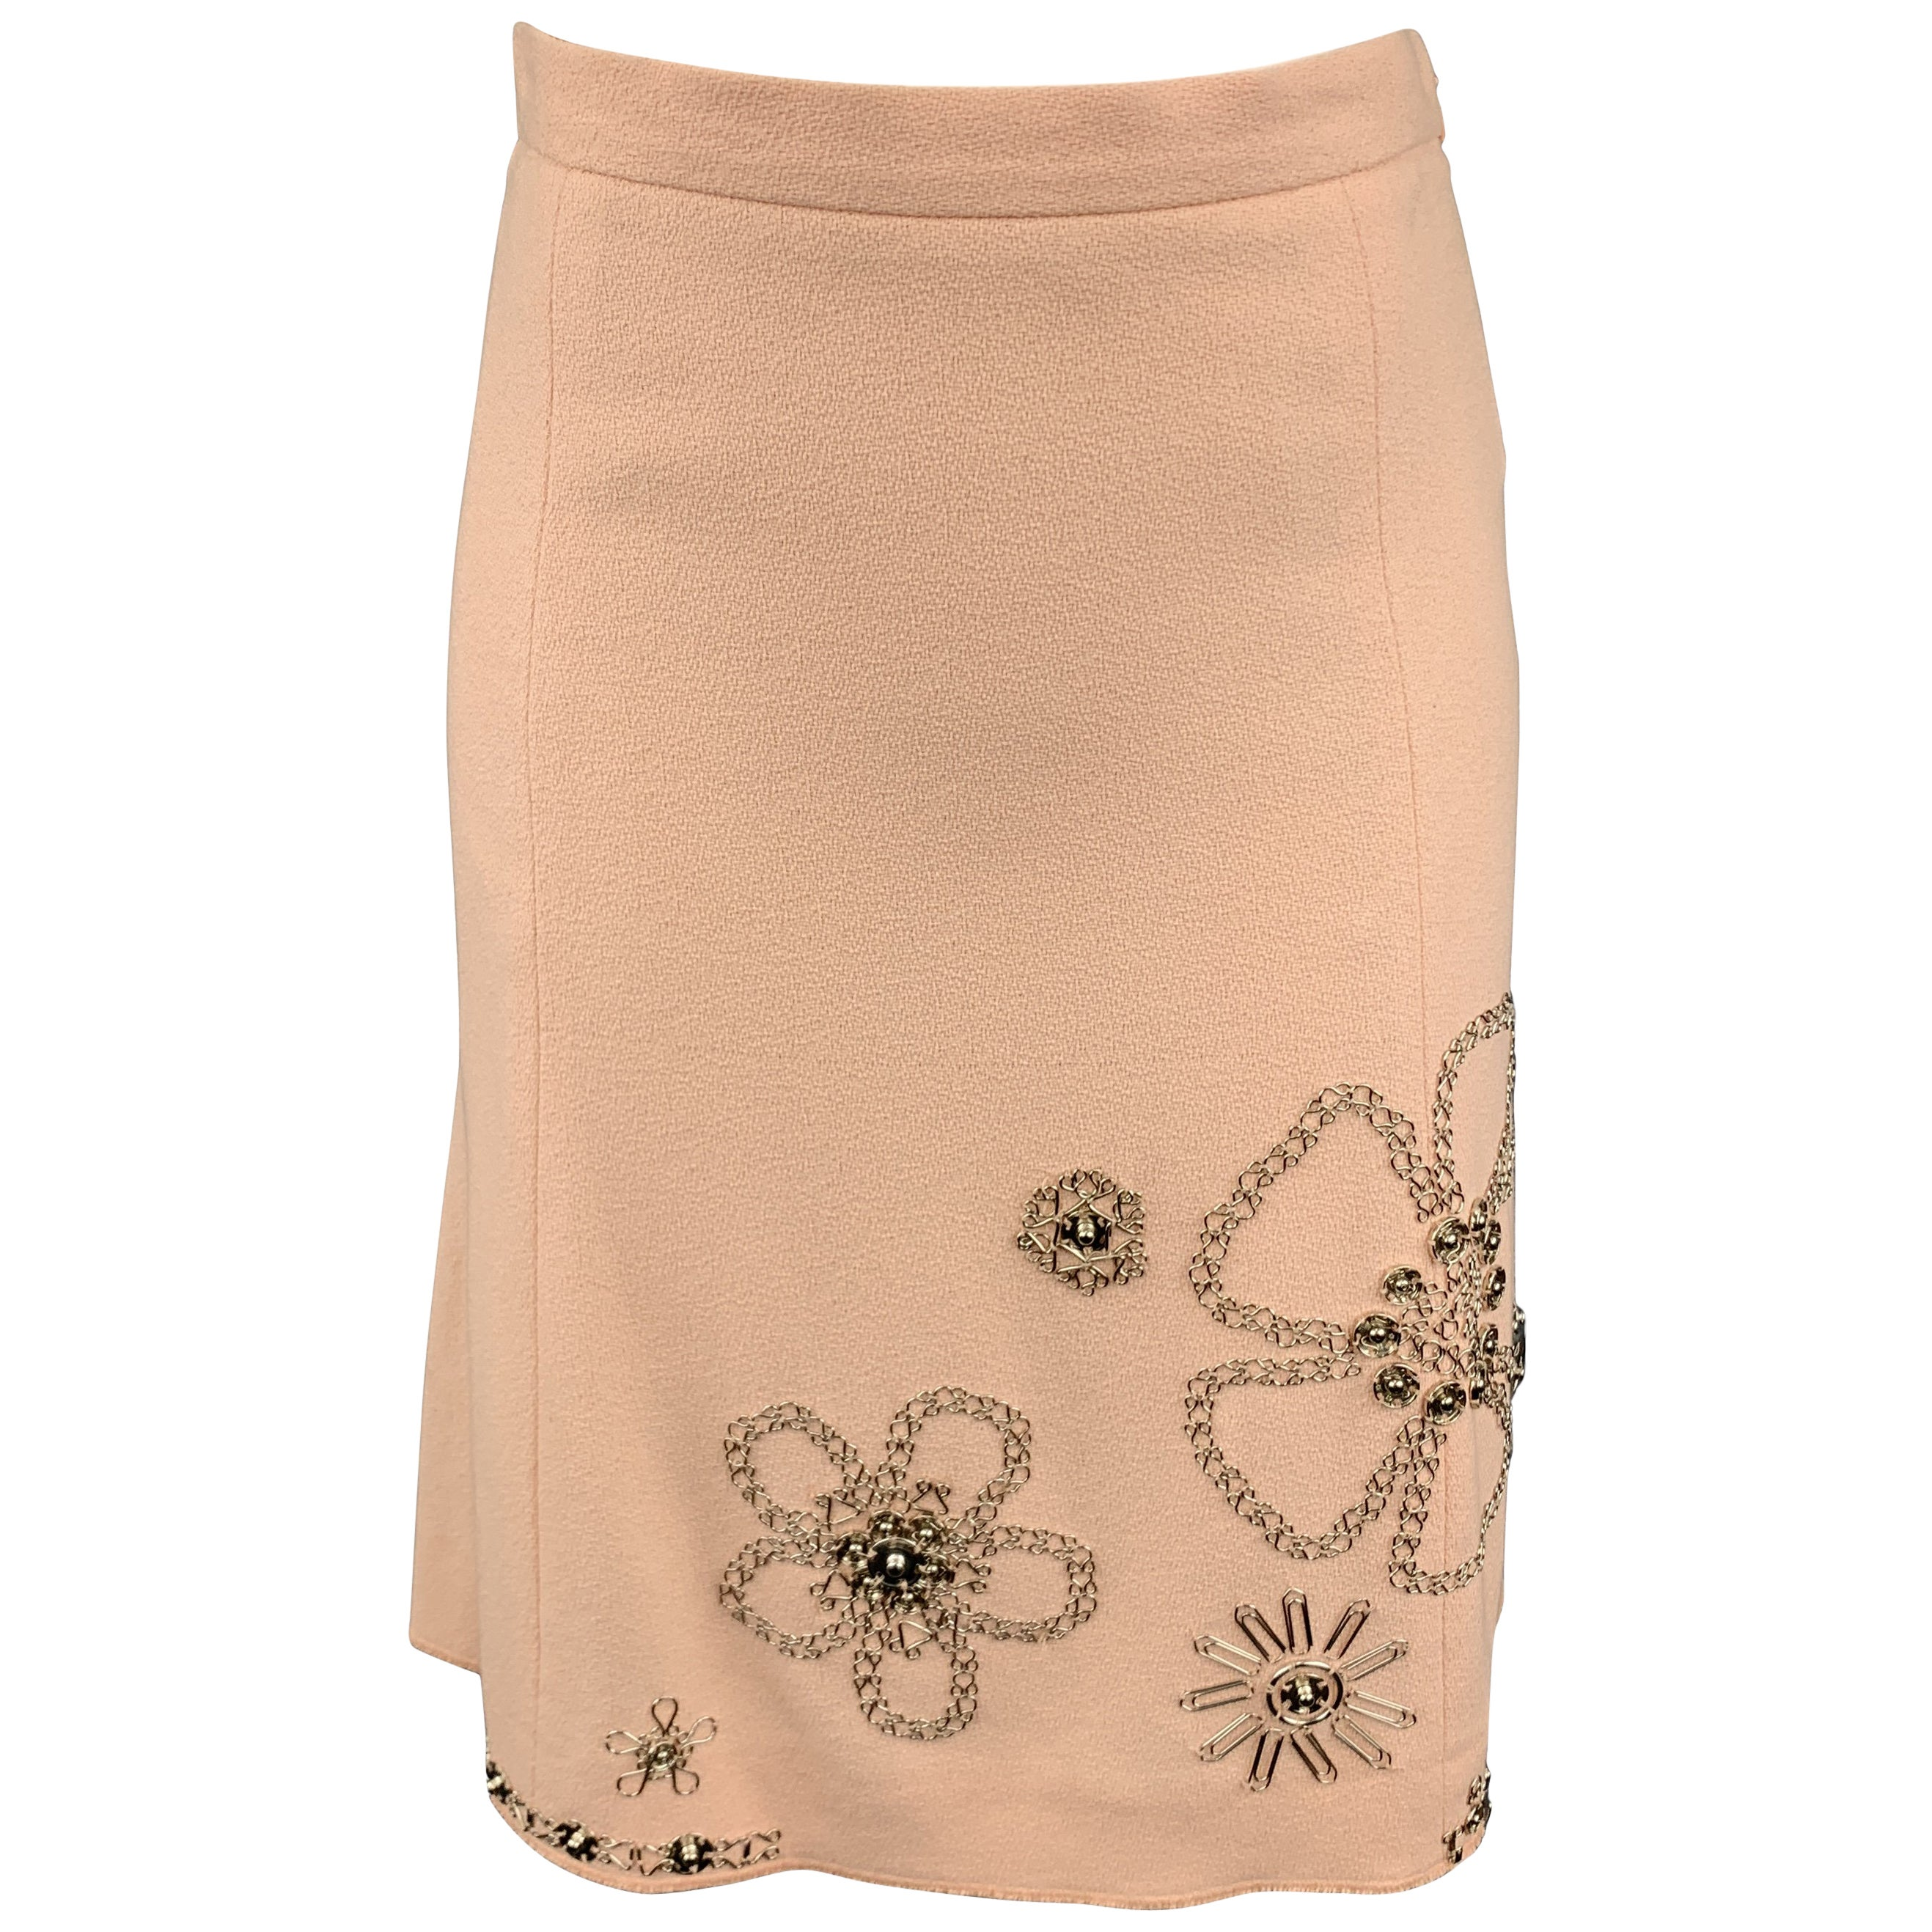 MOSCHINO Size 6 Rose Cotton Floral Embellished Skirt